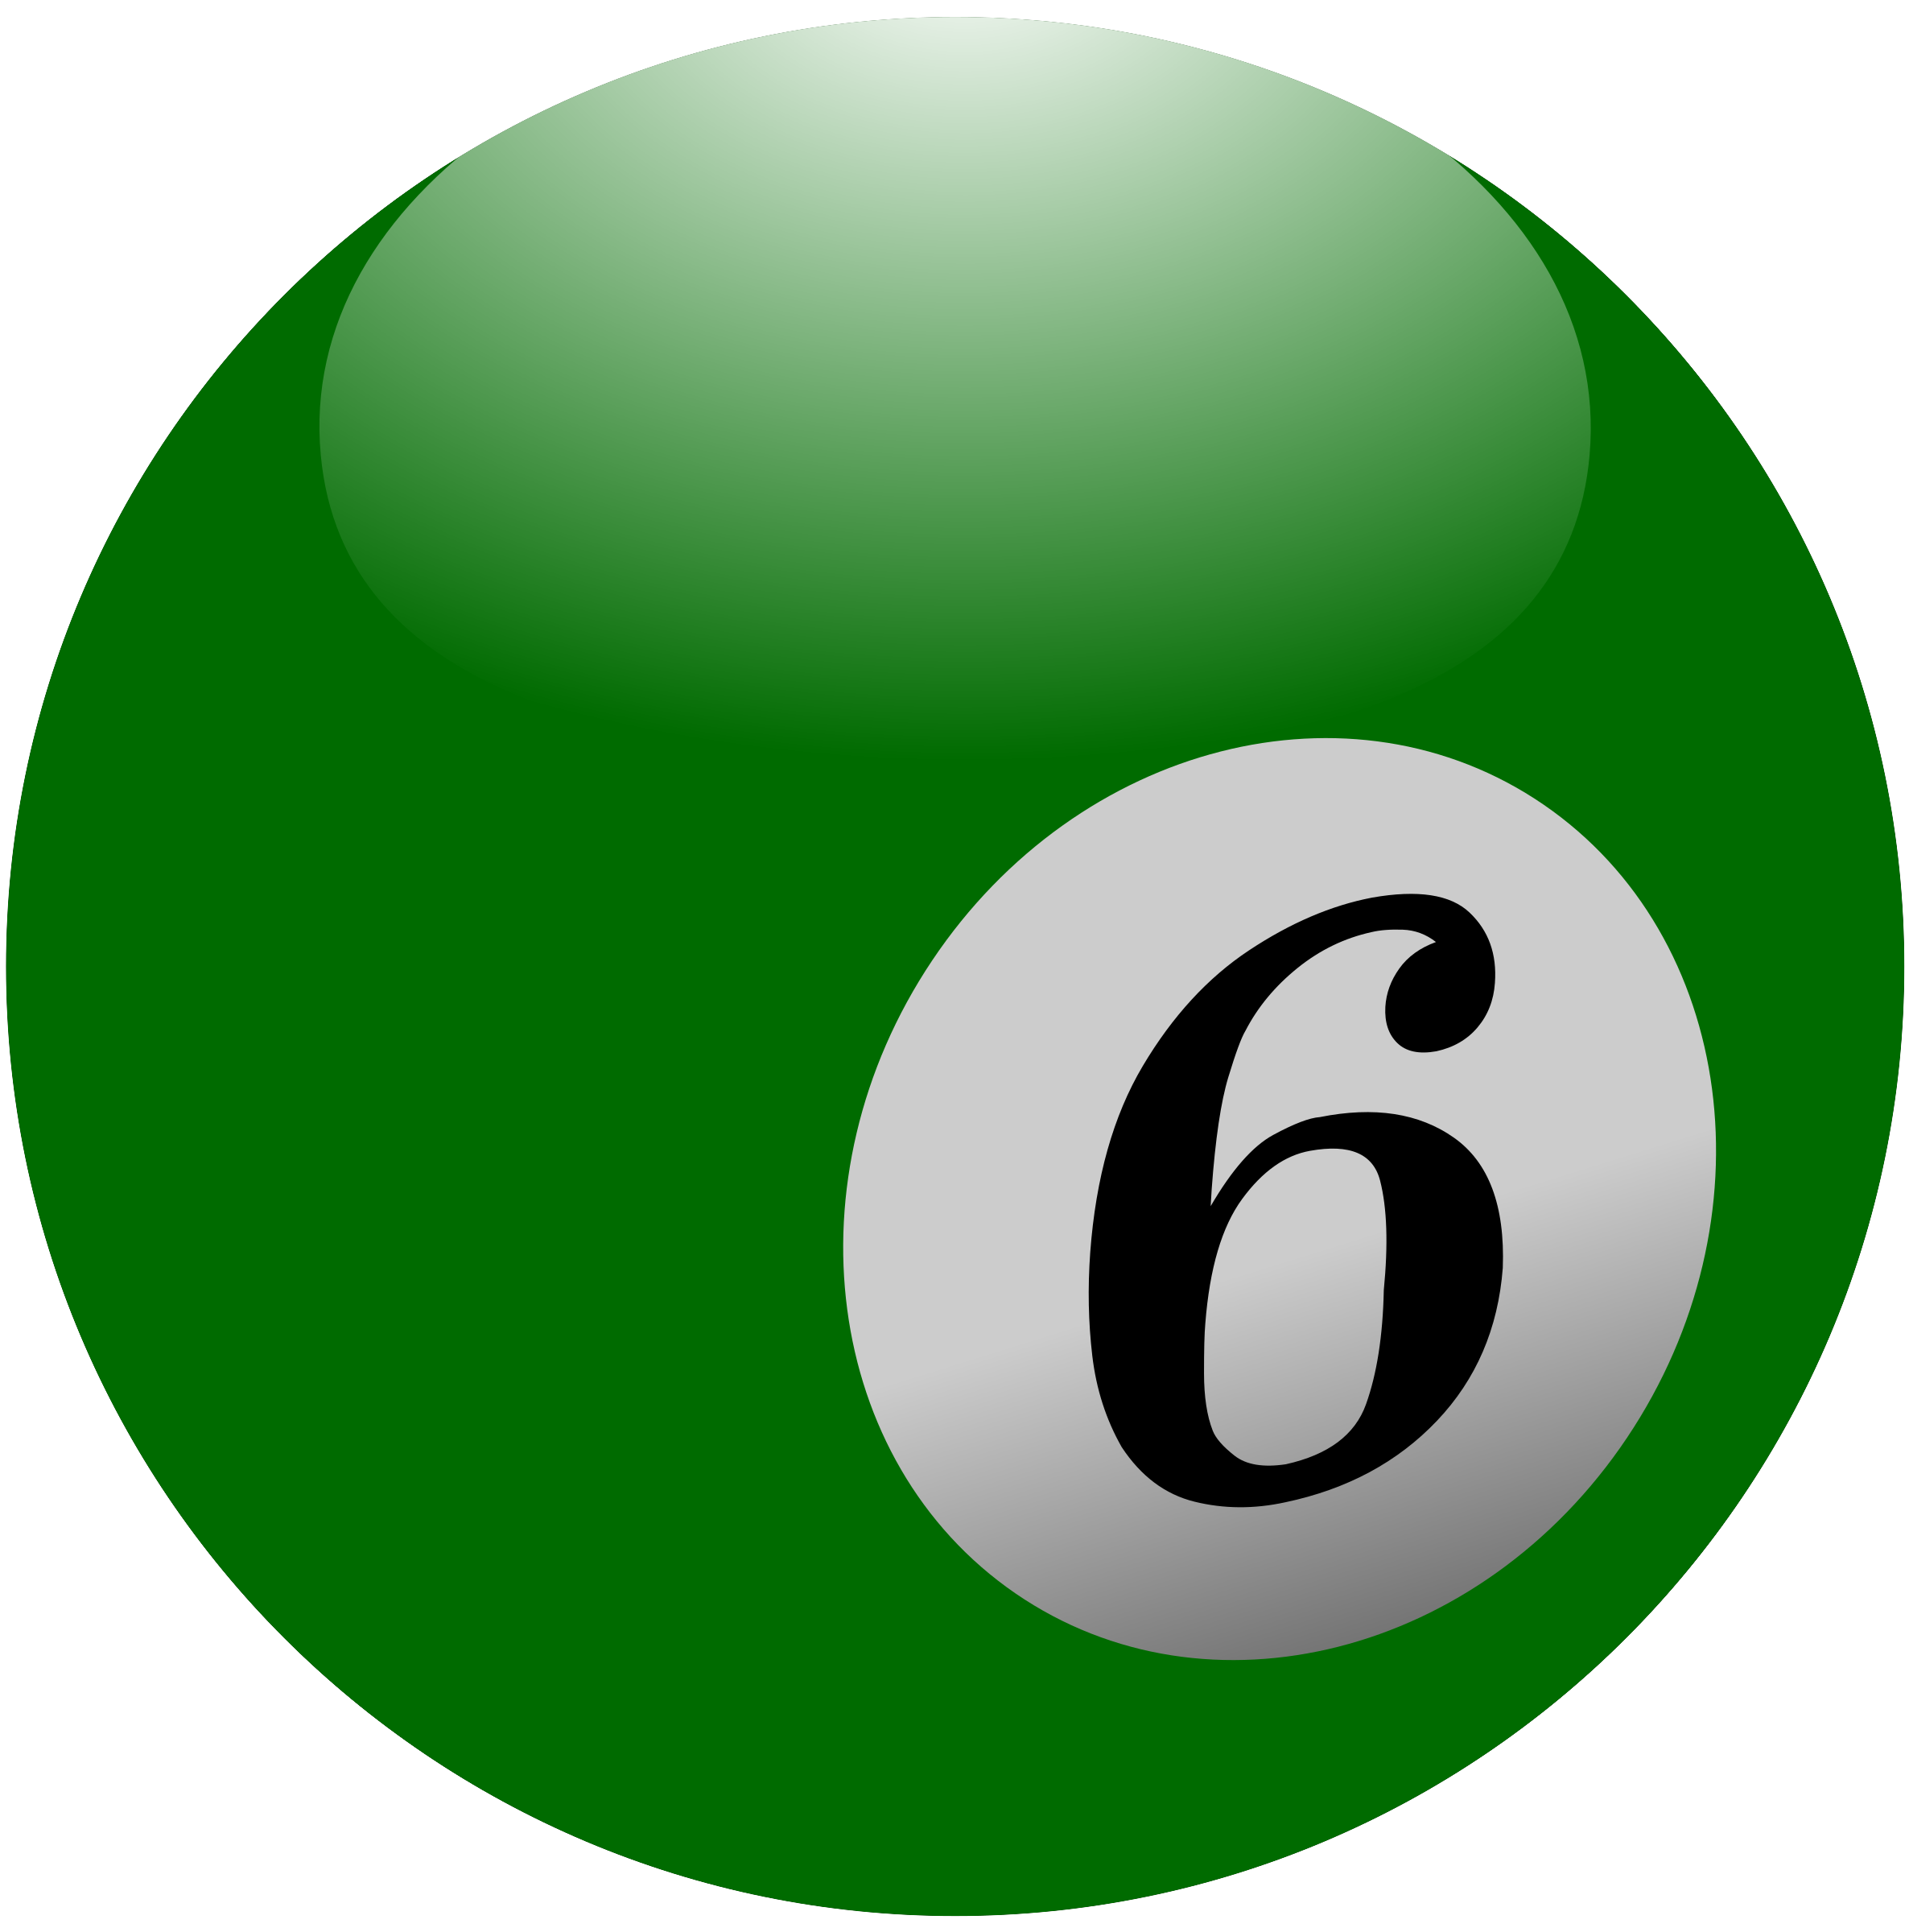 6-ball by natanteam